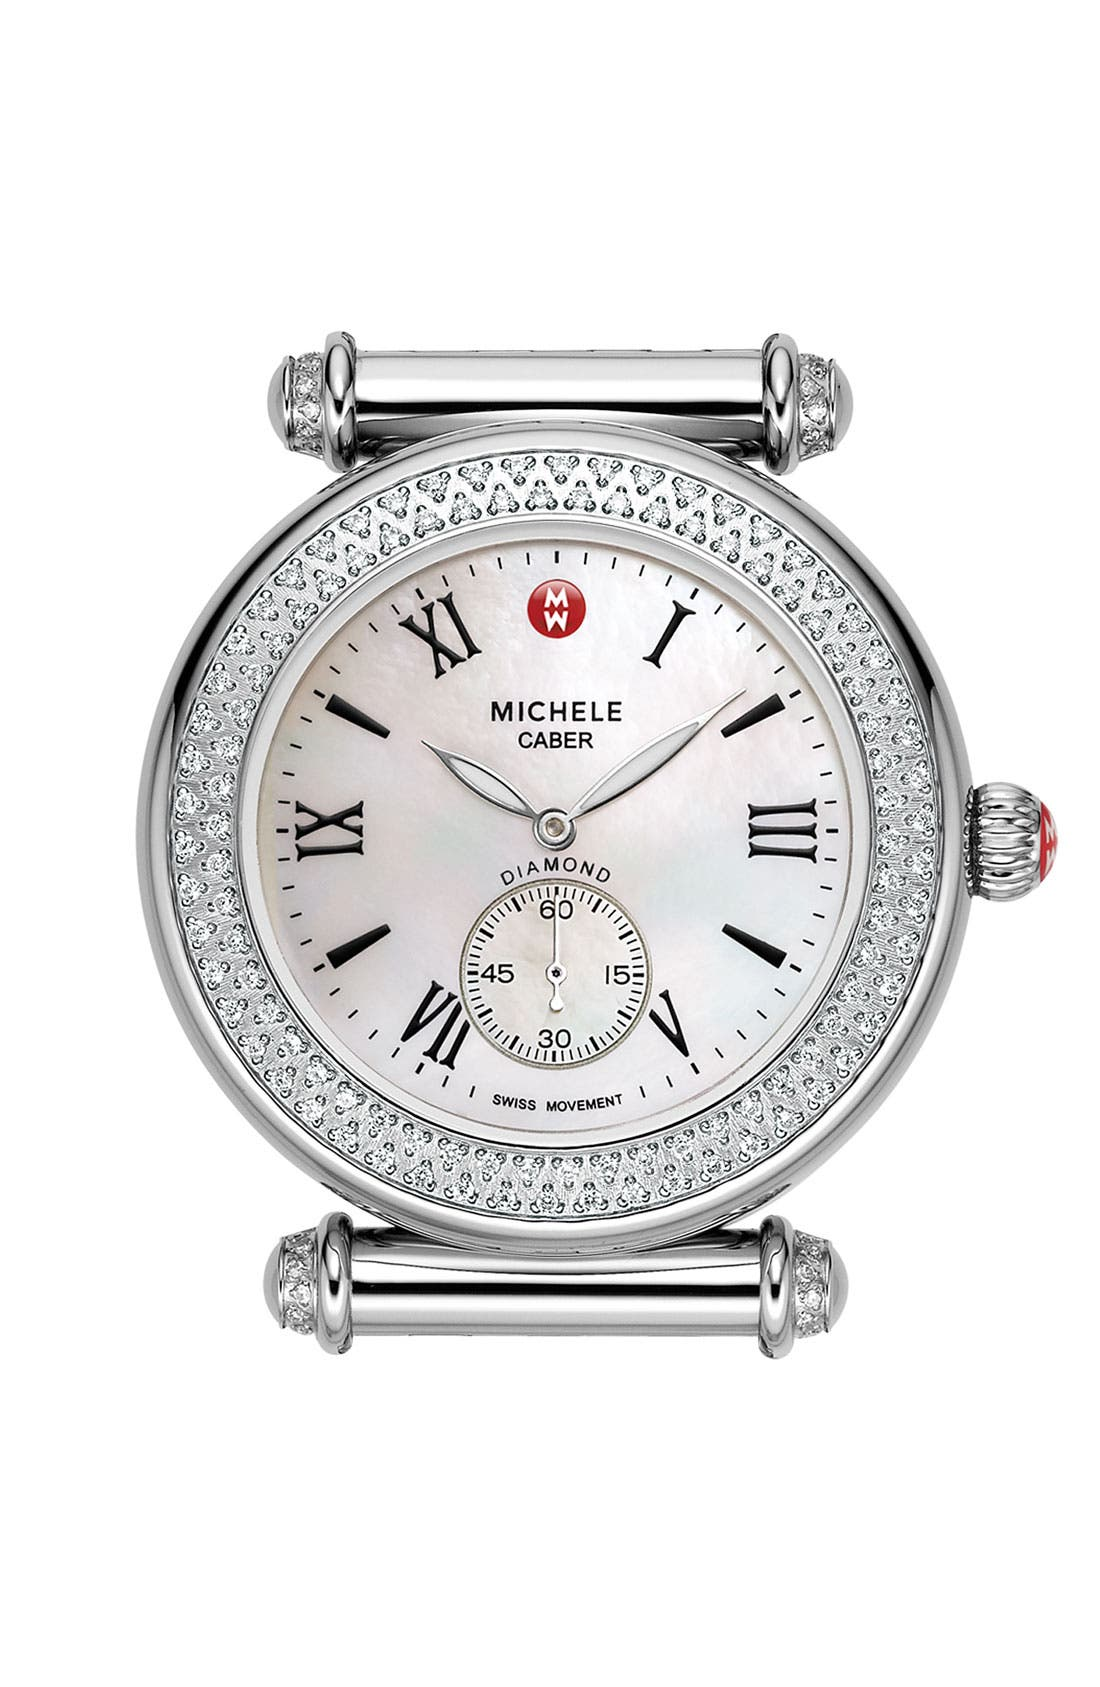 Main Image - MICHELE 'Caber' Diamond Customizable Watch